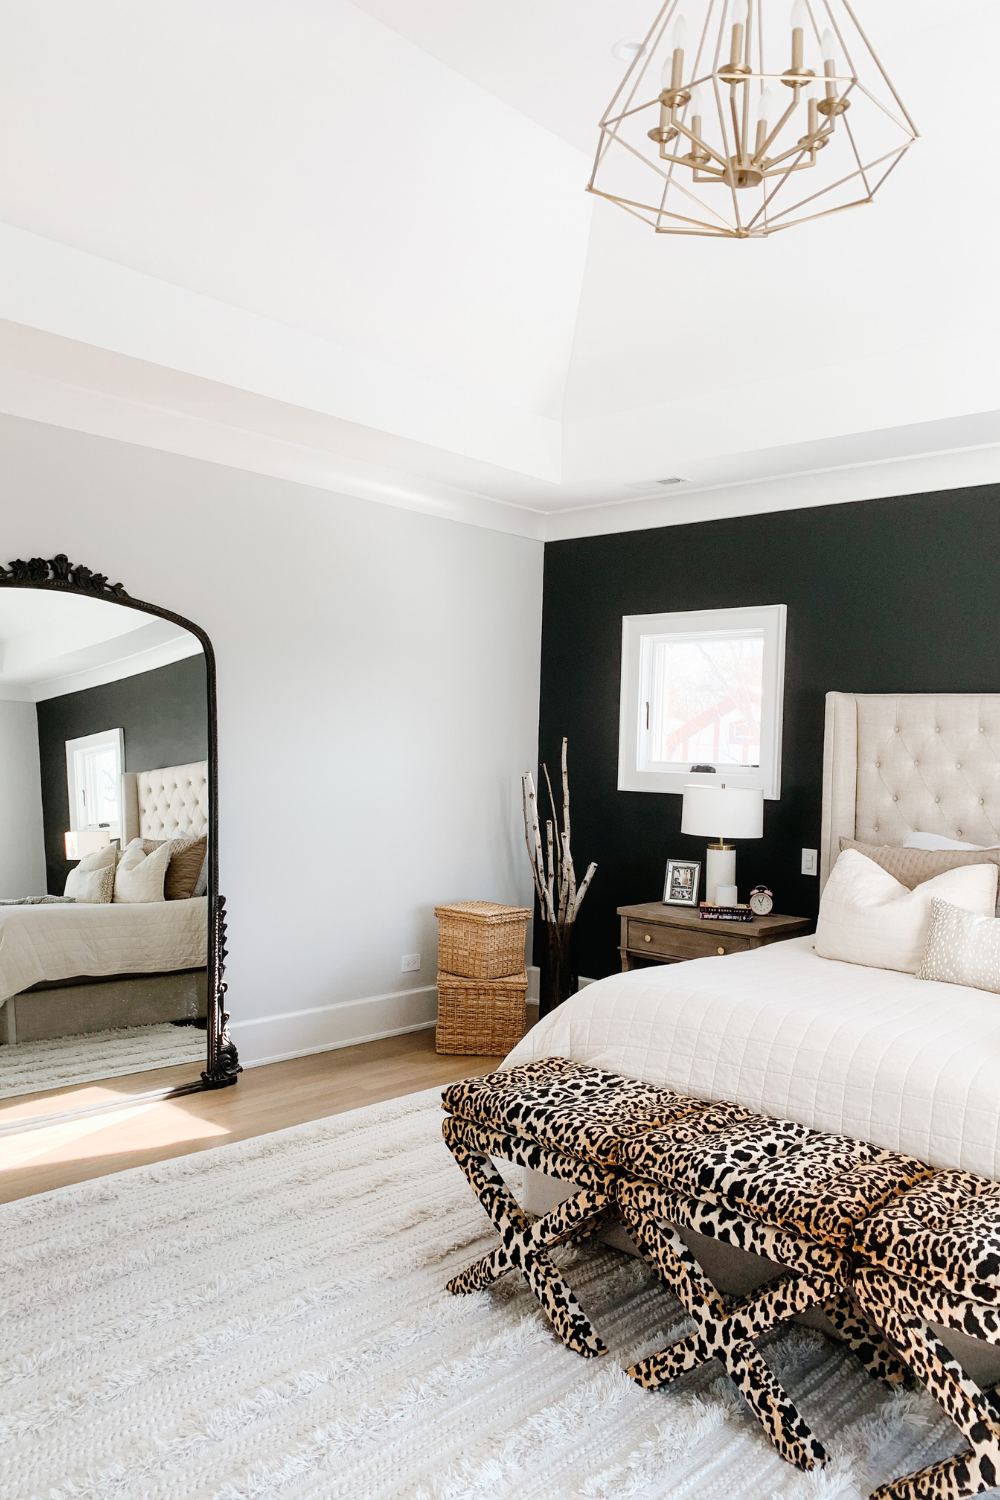 July's Most Loved: Floor Mirror